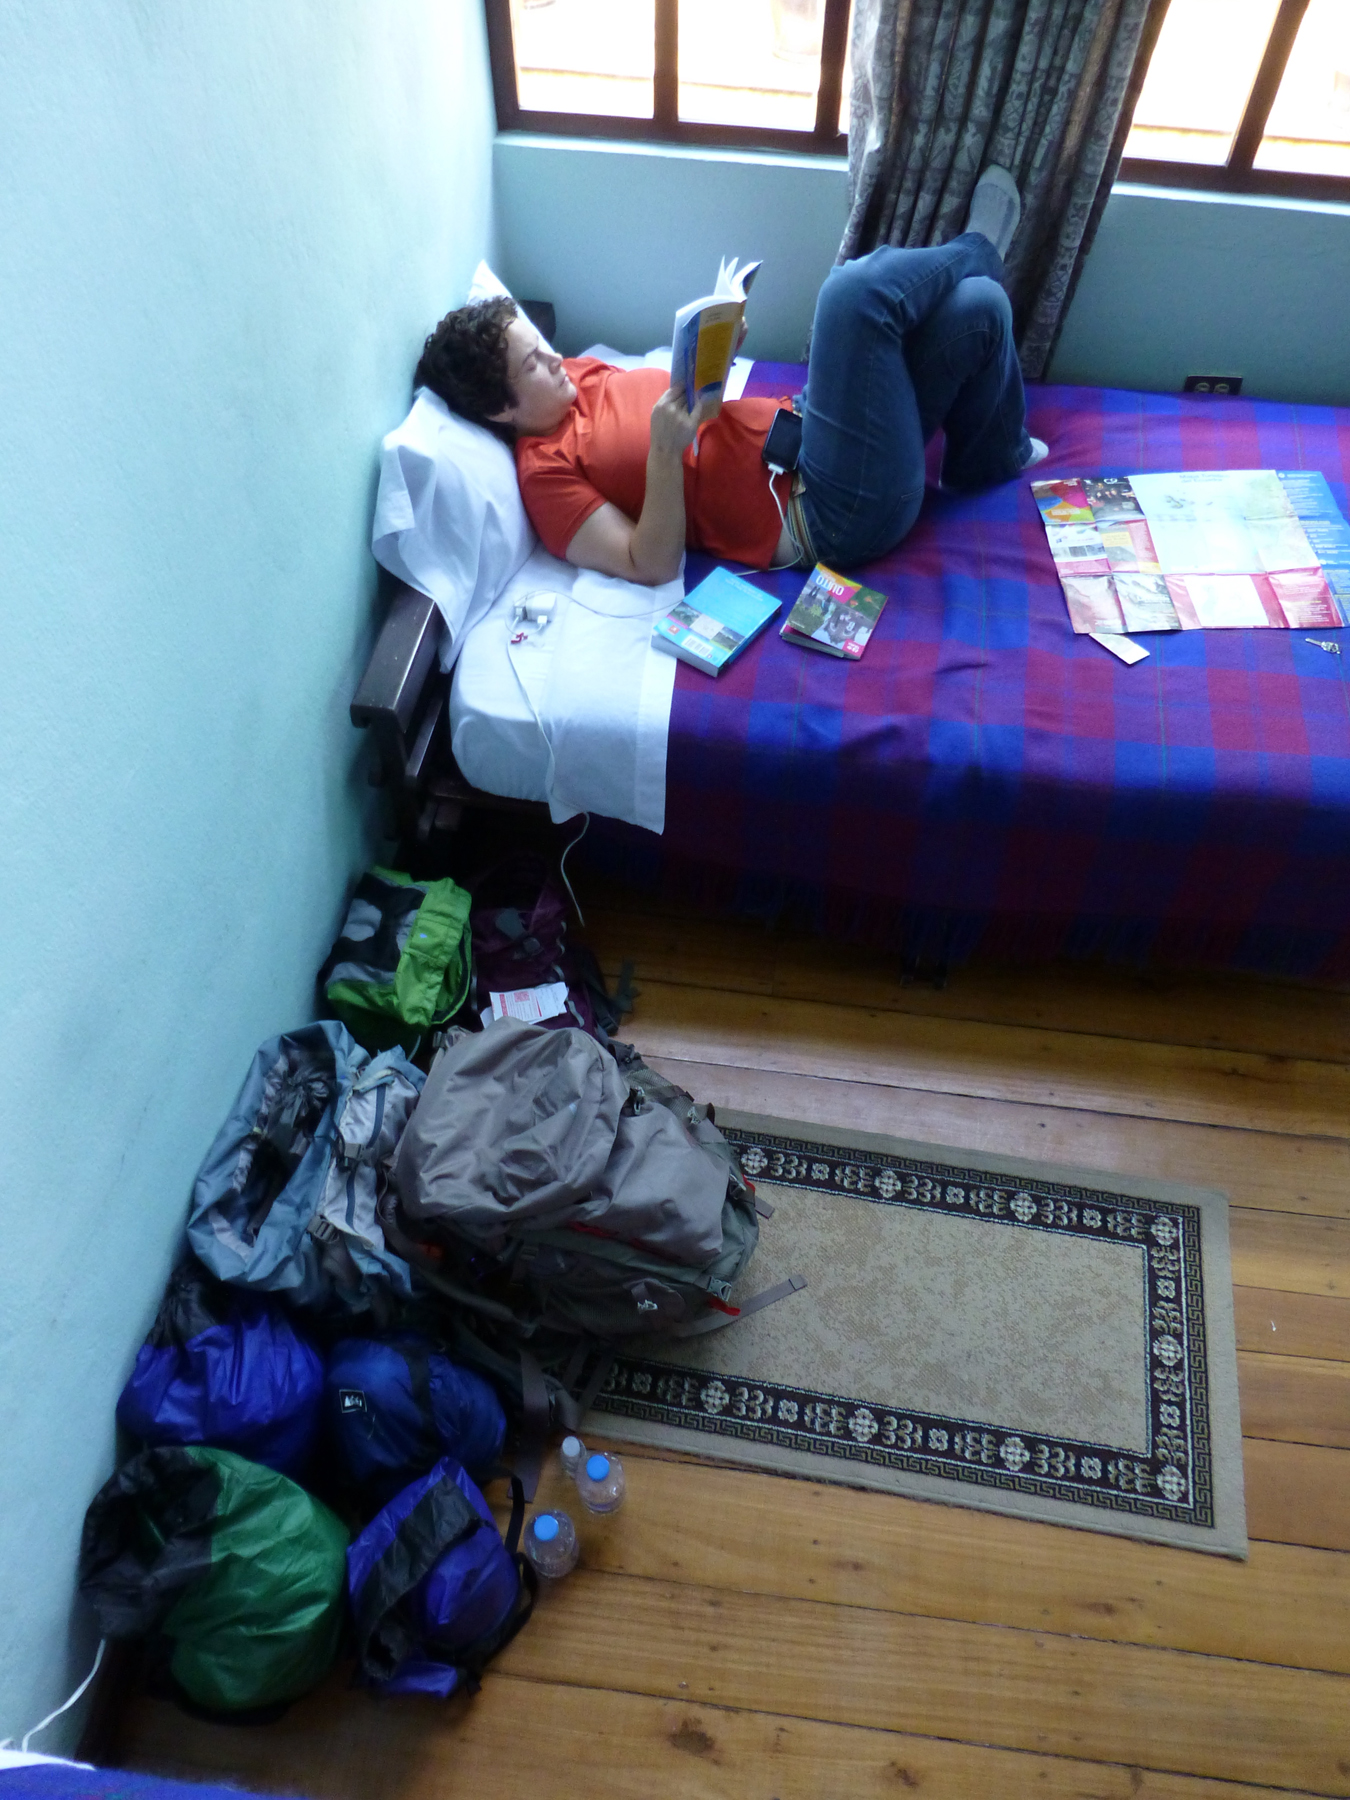 Katie relaxing in our Quito hostel alongside our worldly possessions. A controlled explosion at the moment.